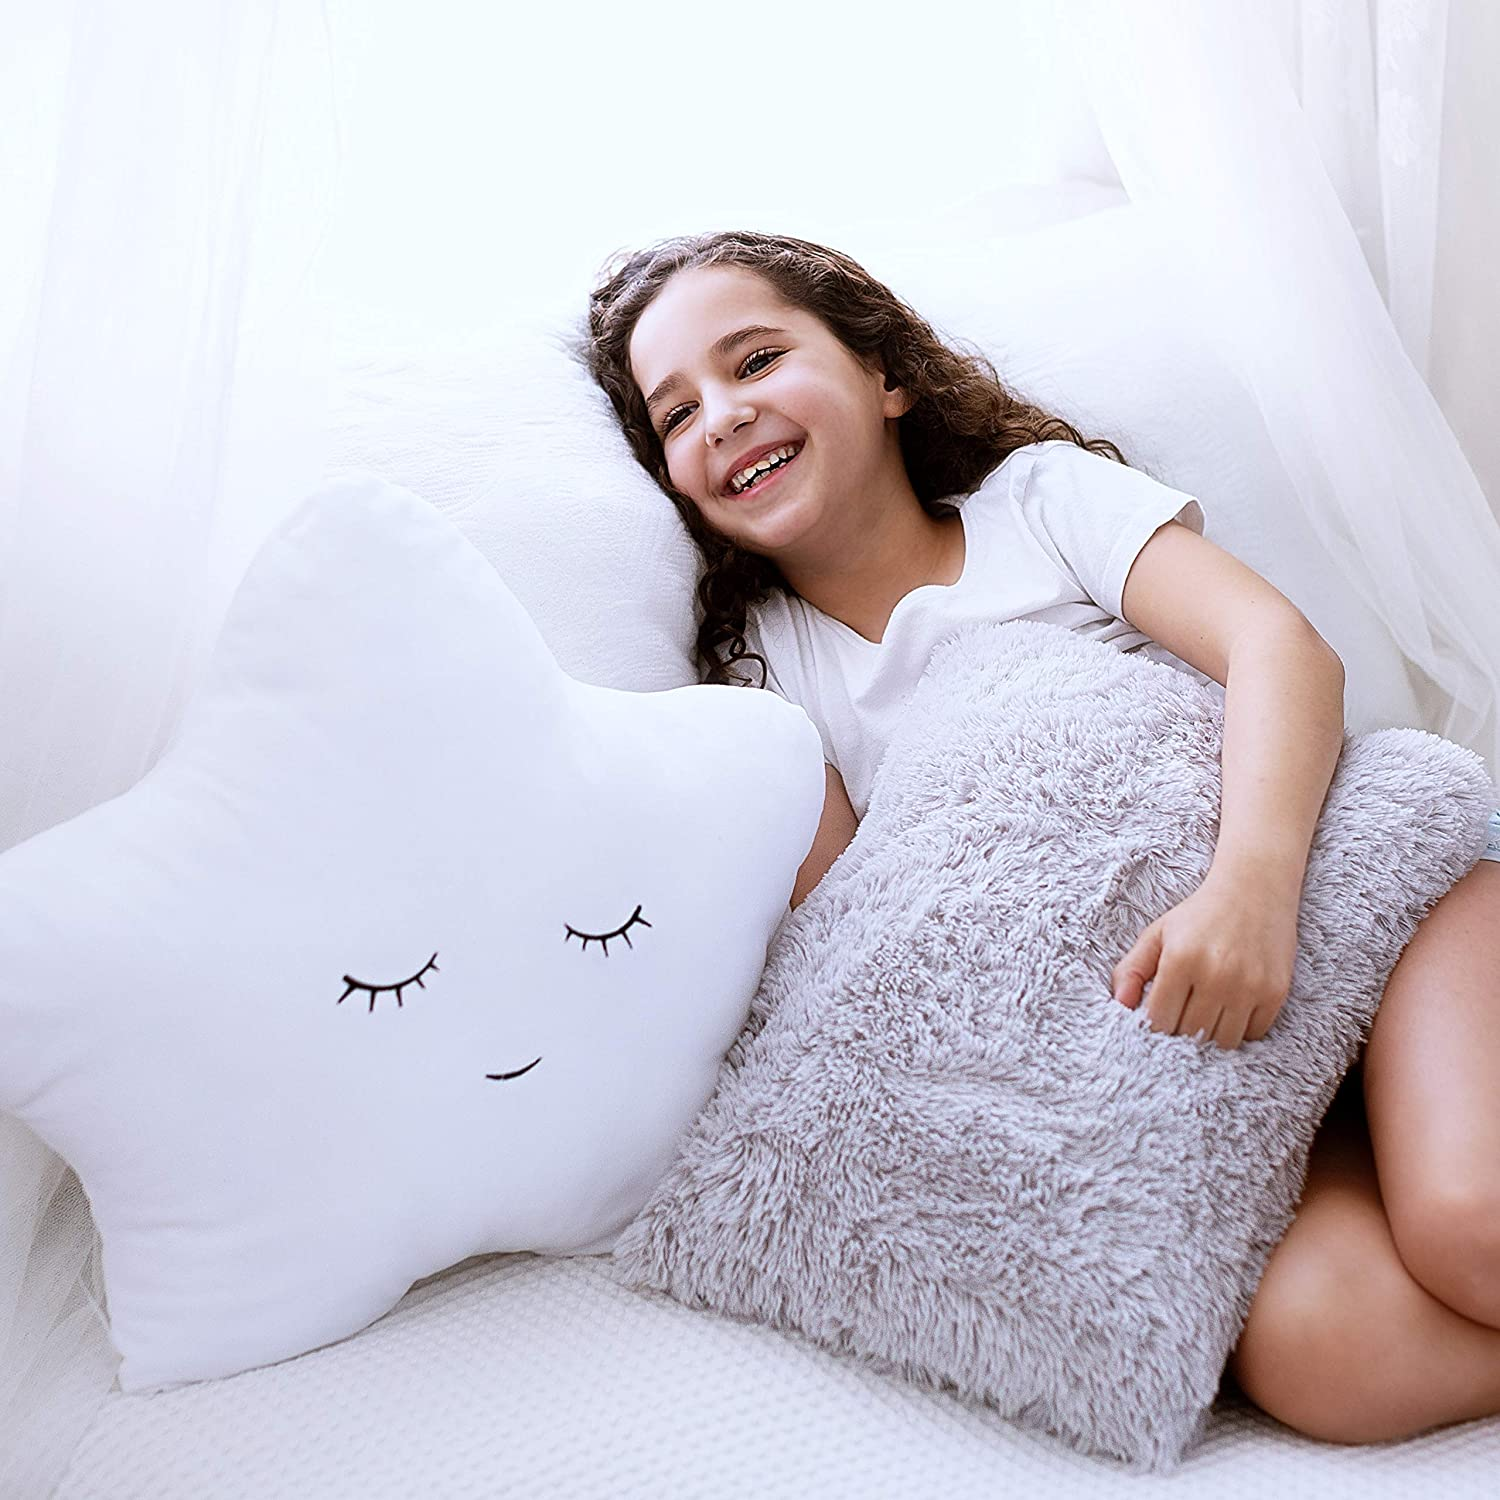 Set of 2 Decorative Pillows for Girls Boys, Toddler Kids Room. Star Pillow Fluffy White Embroidered and Furry Grey Faux Fur Pillow. Soft Plush Girls Pillows, Throw Pillows for Kid's, Teens Bedroom